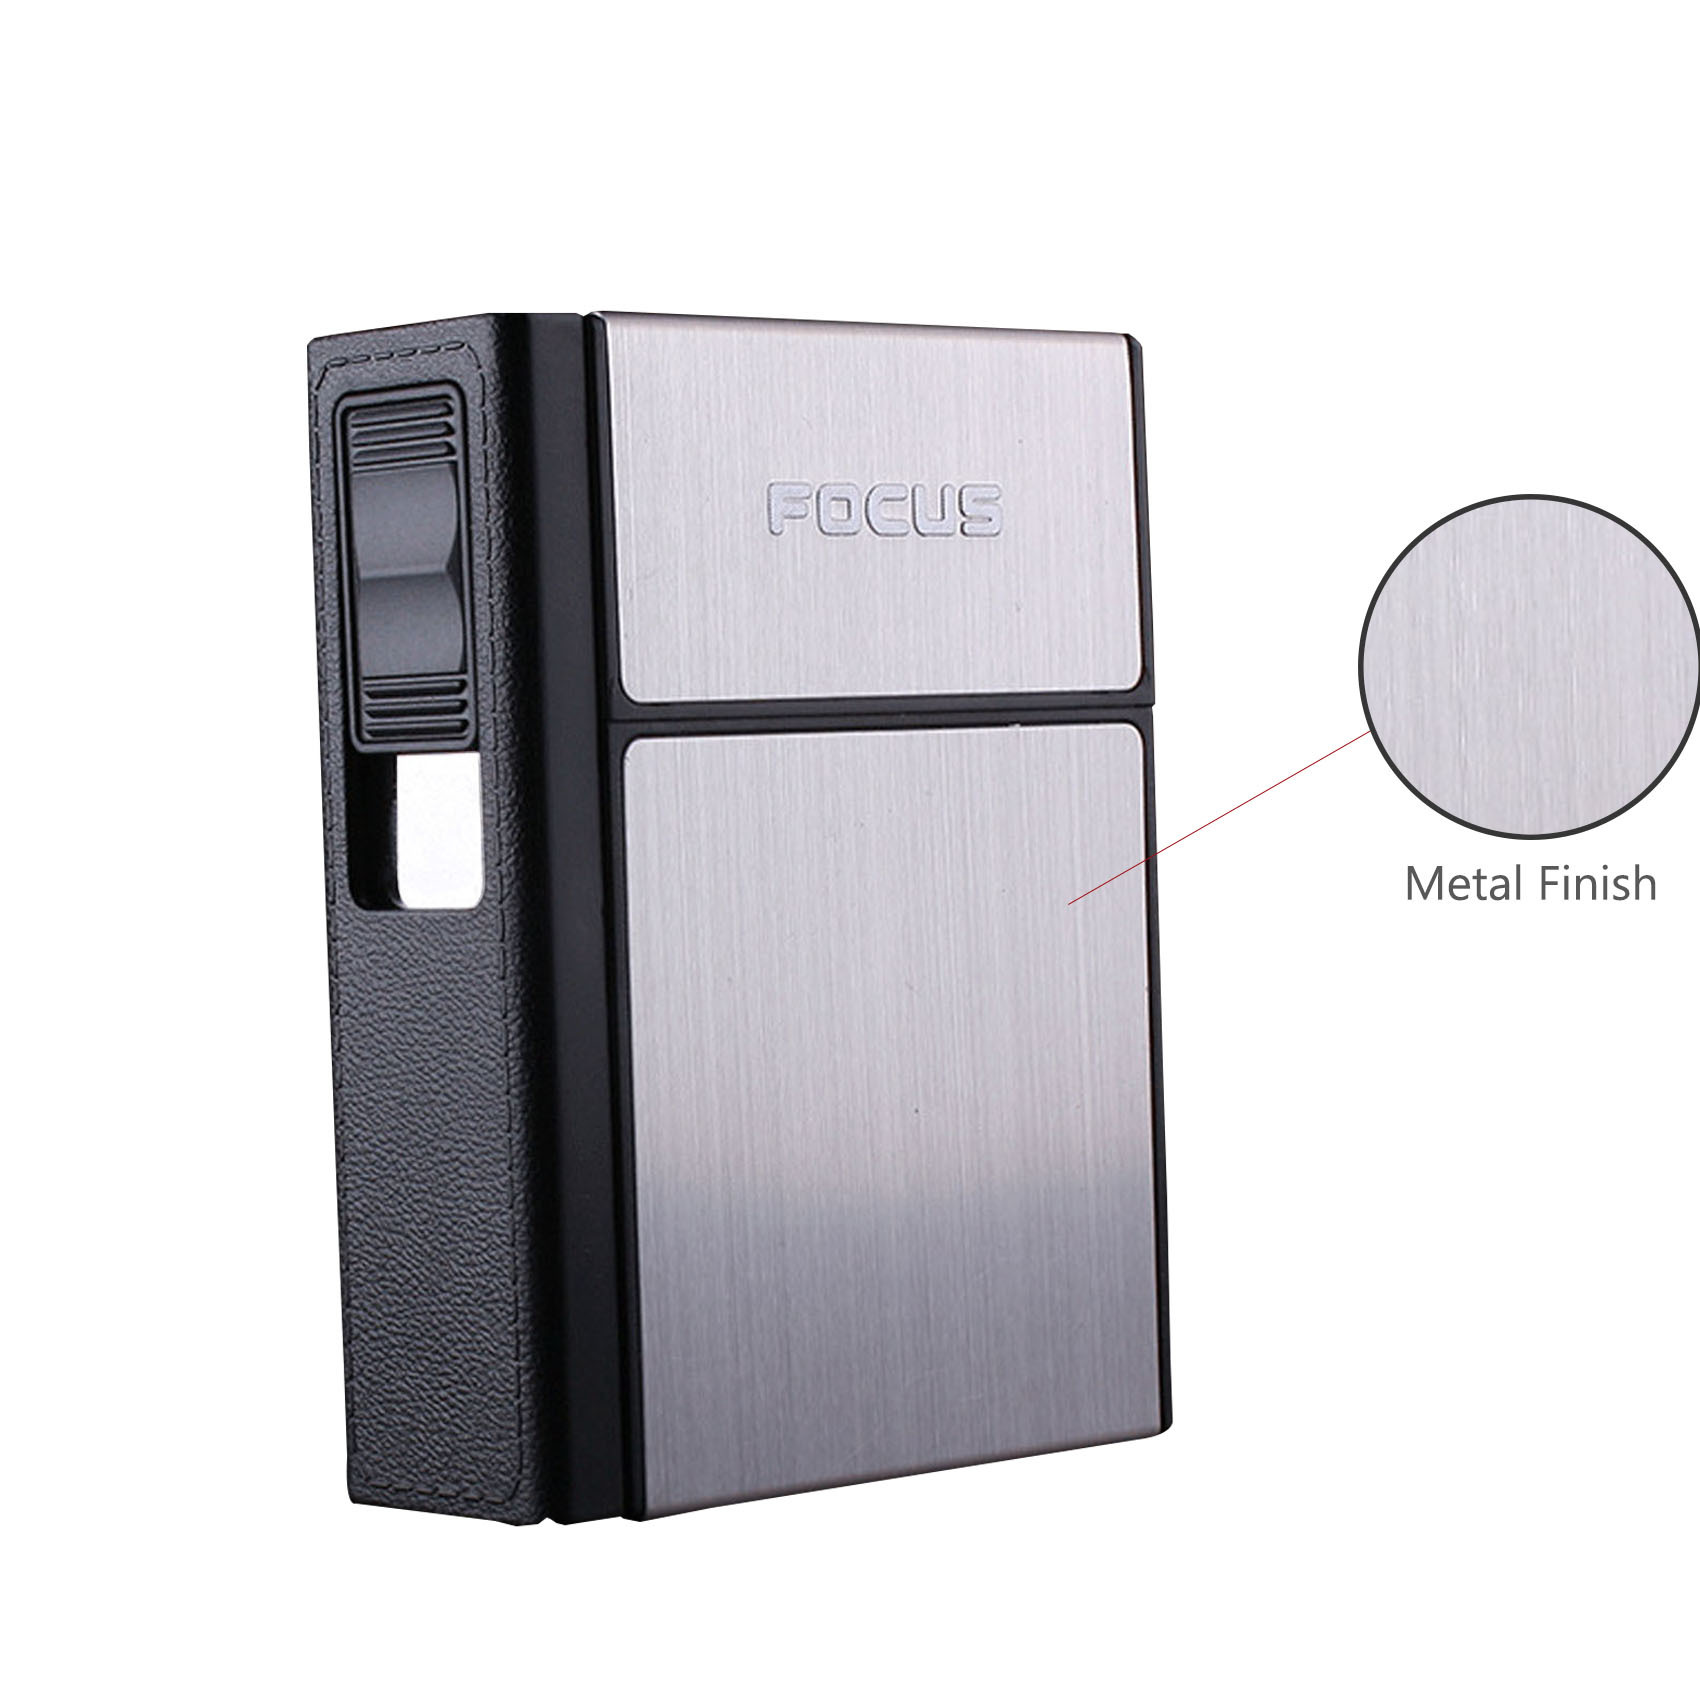 Focus Cigarette Case with Rechargeable Lighter - Silver